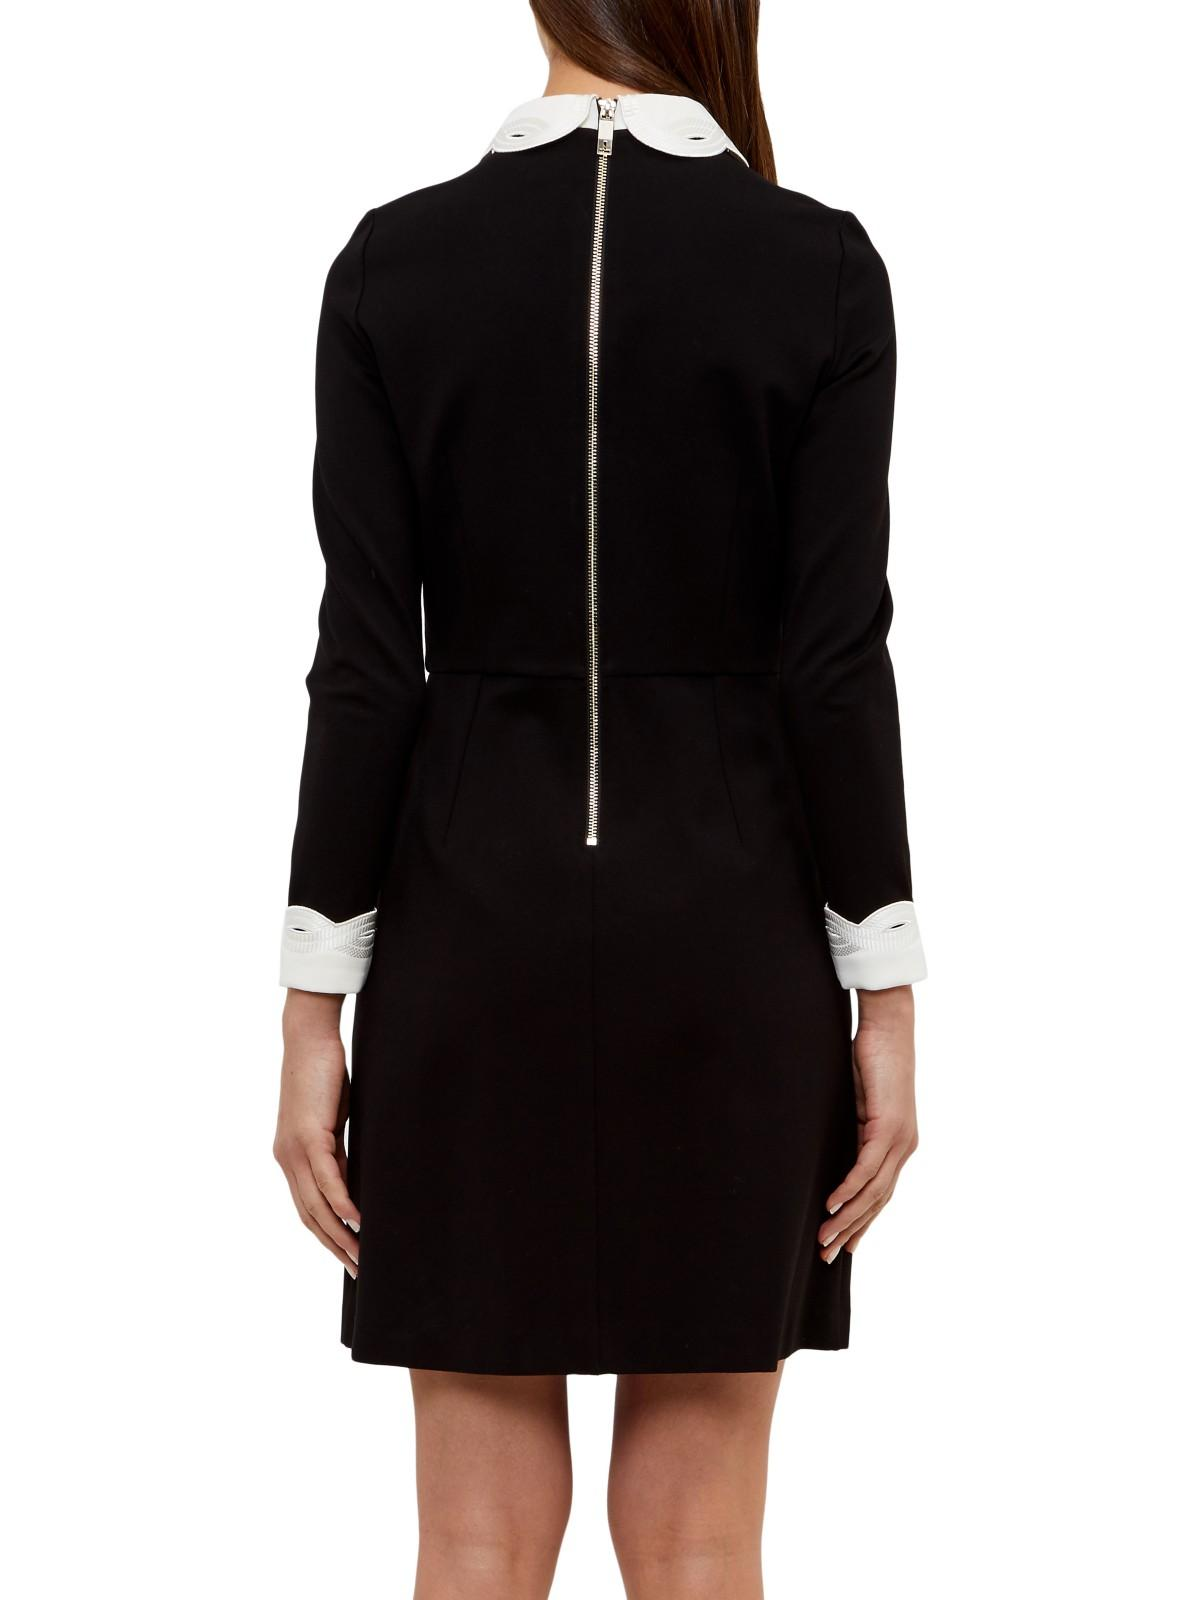 Lyst Ted Baker Shealah Embroidered Collar Dress In Black